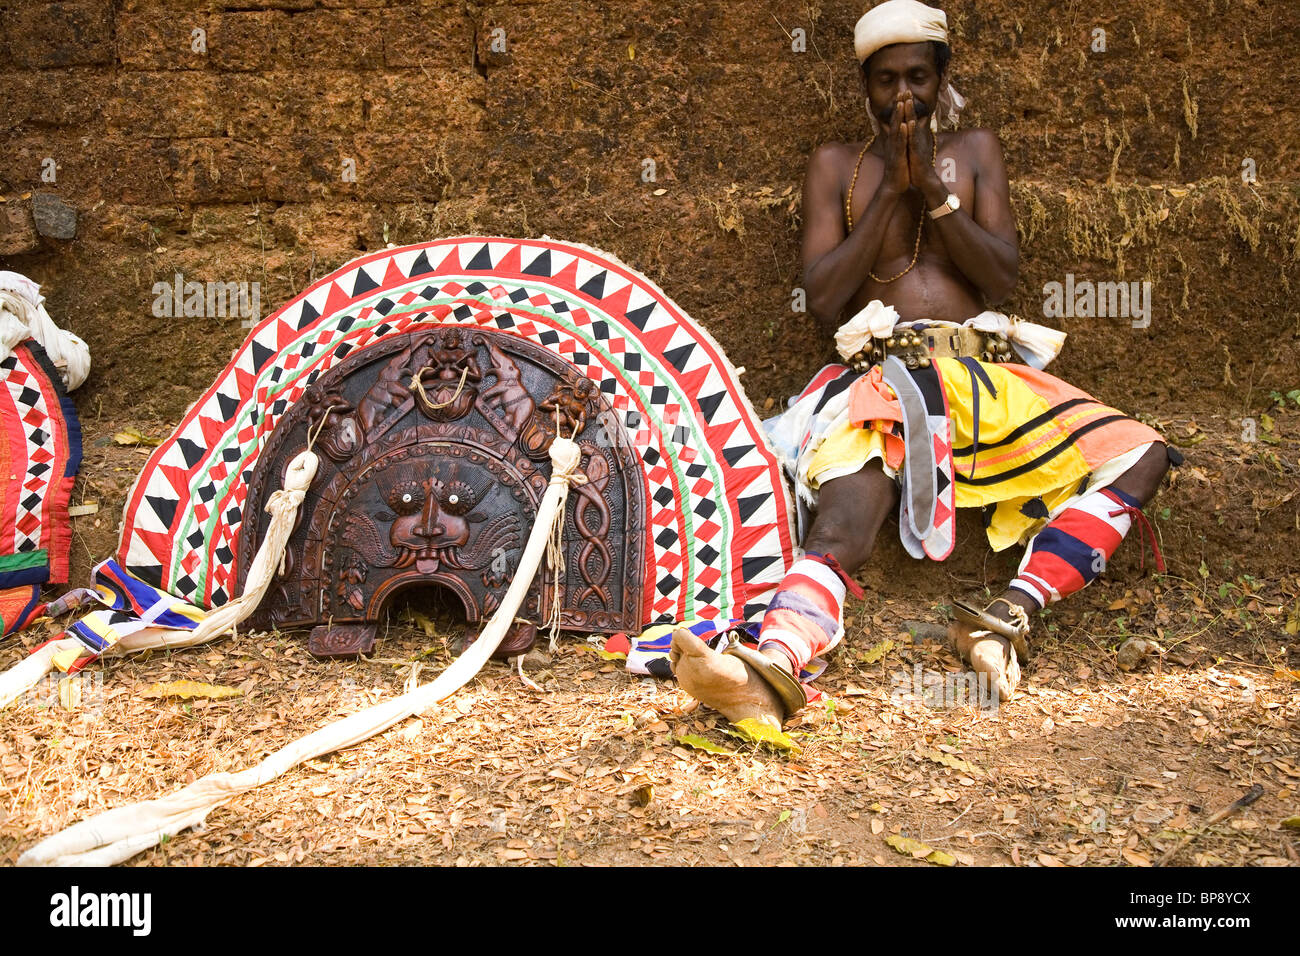 A Theyyam dancer rests by his headdress after perfoming in Kerala, India. - Stock Image